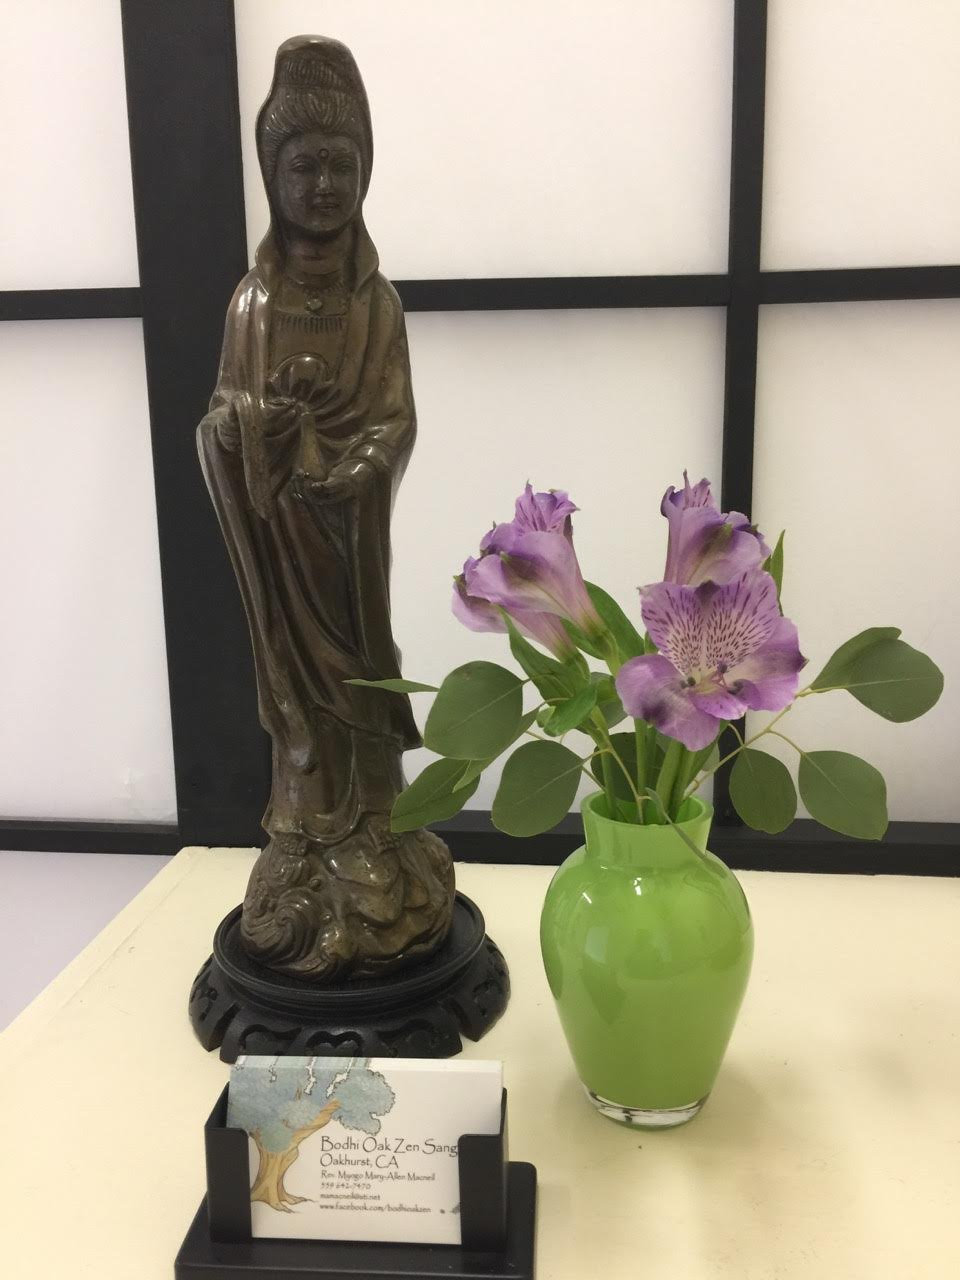 Business card and Buddhist statue